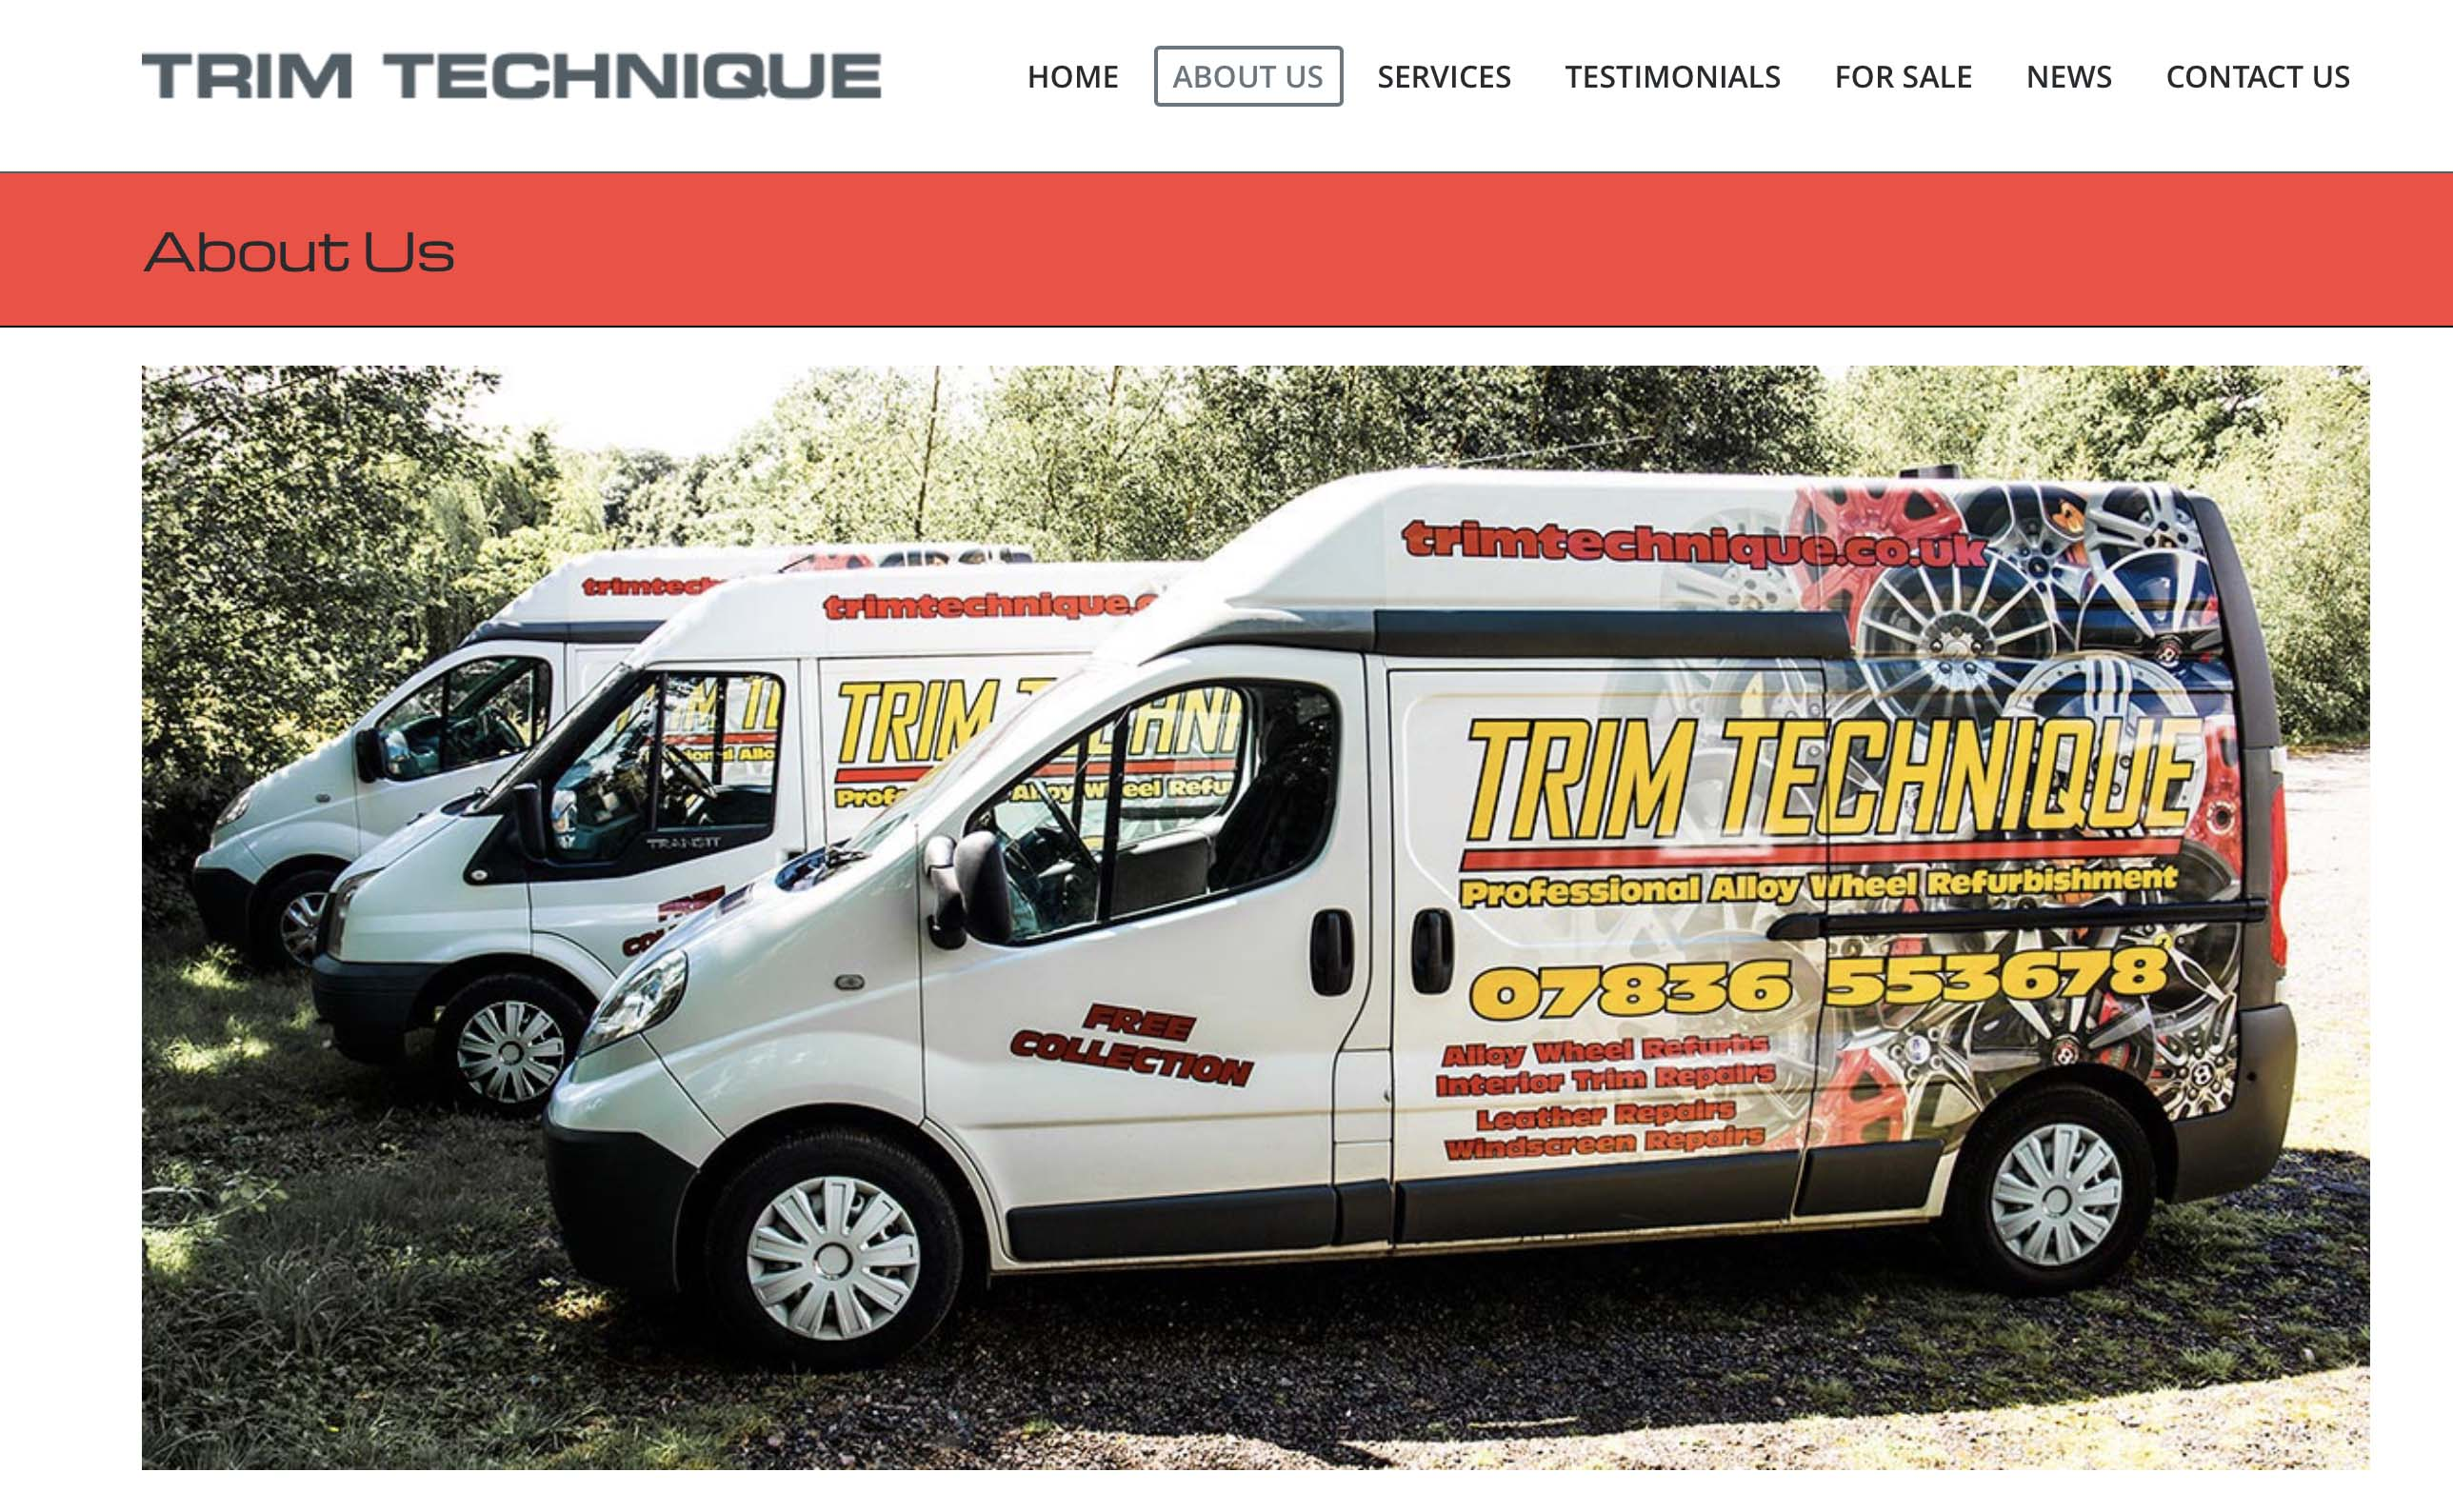 Trim Technique website